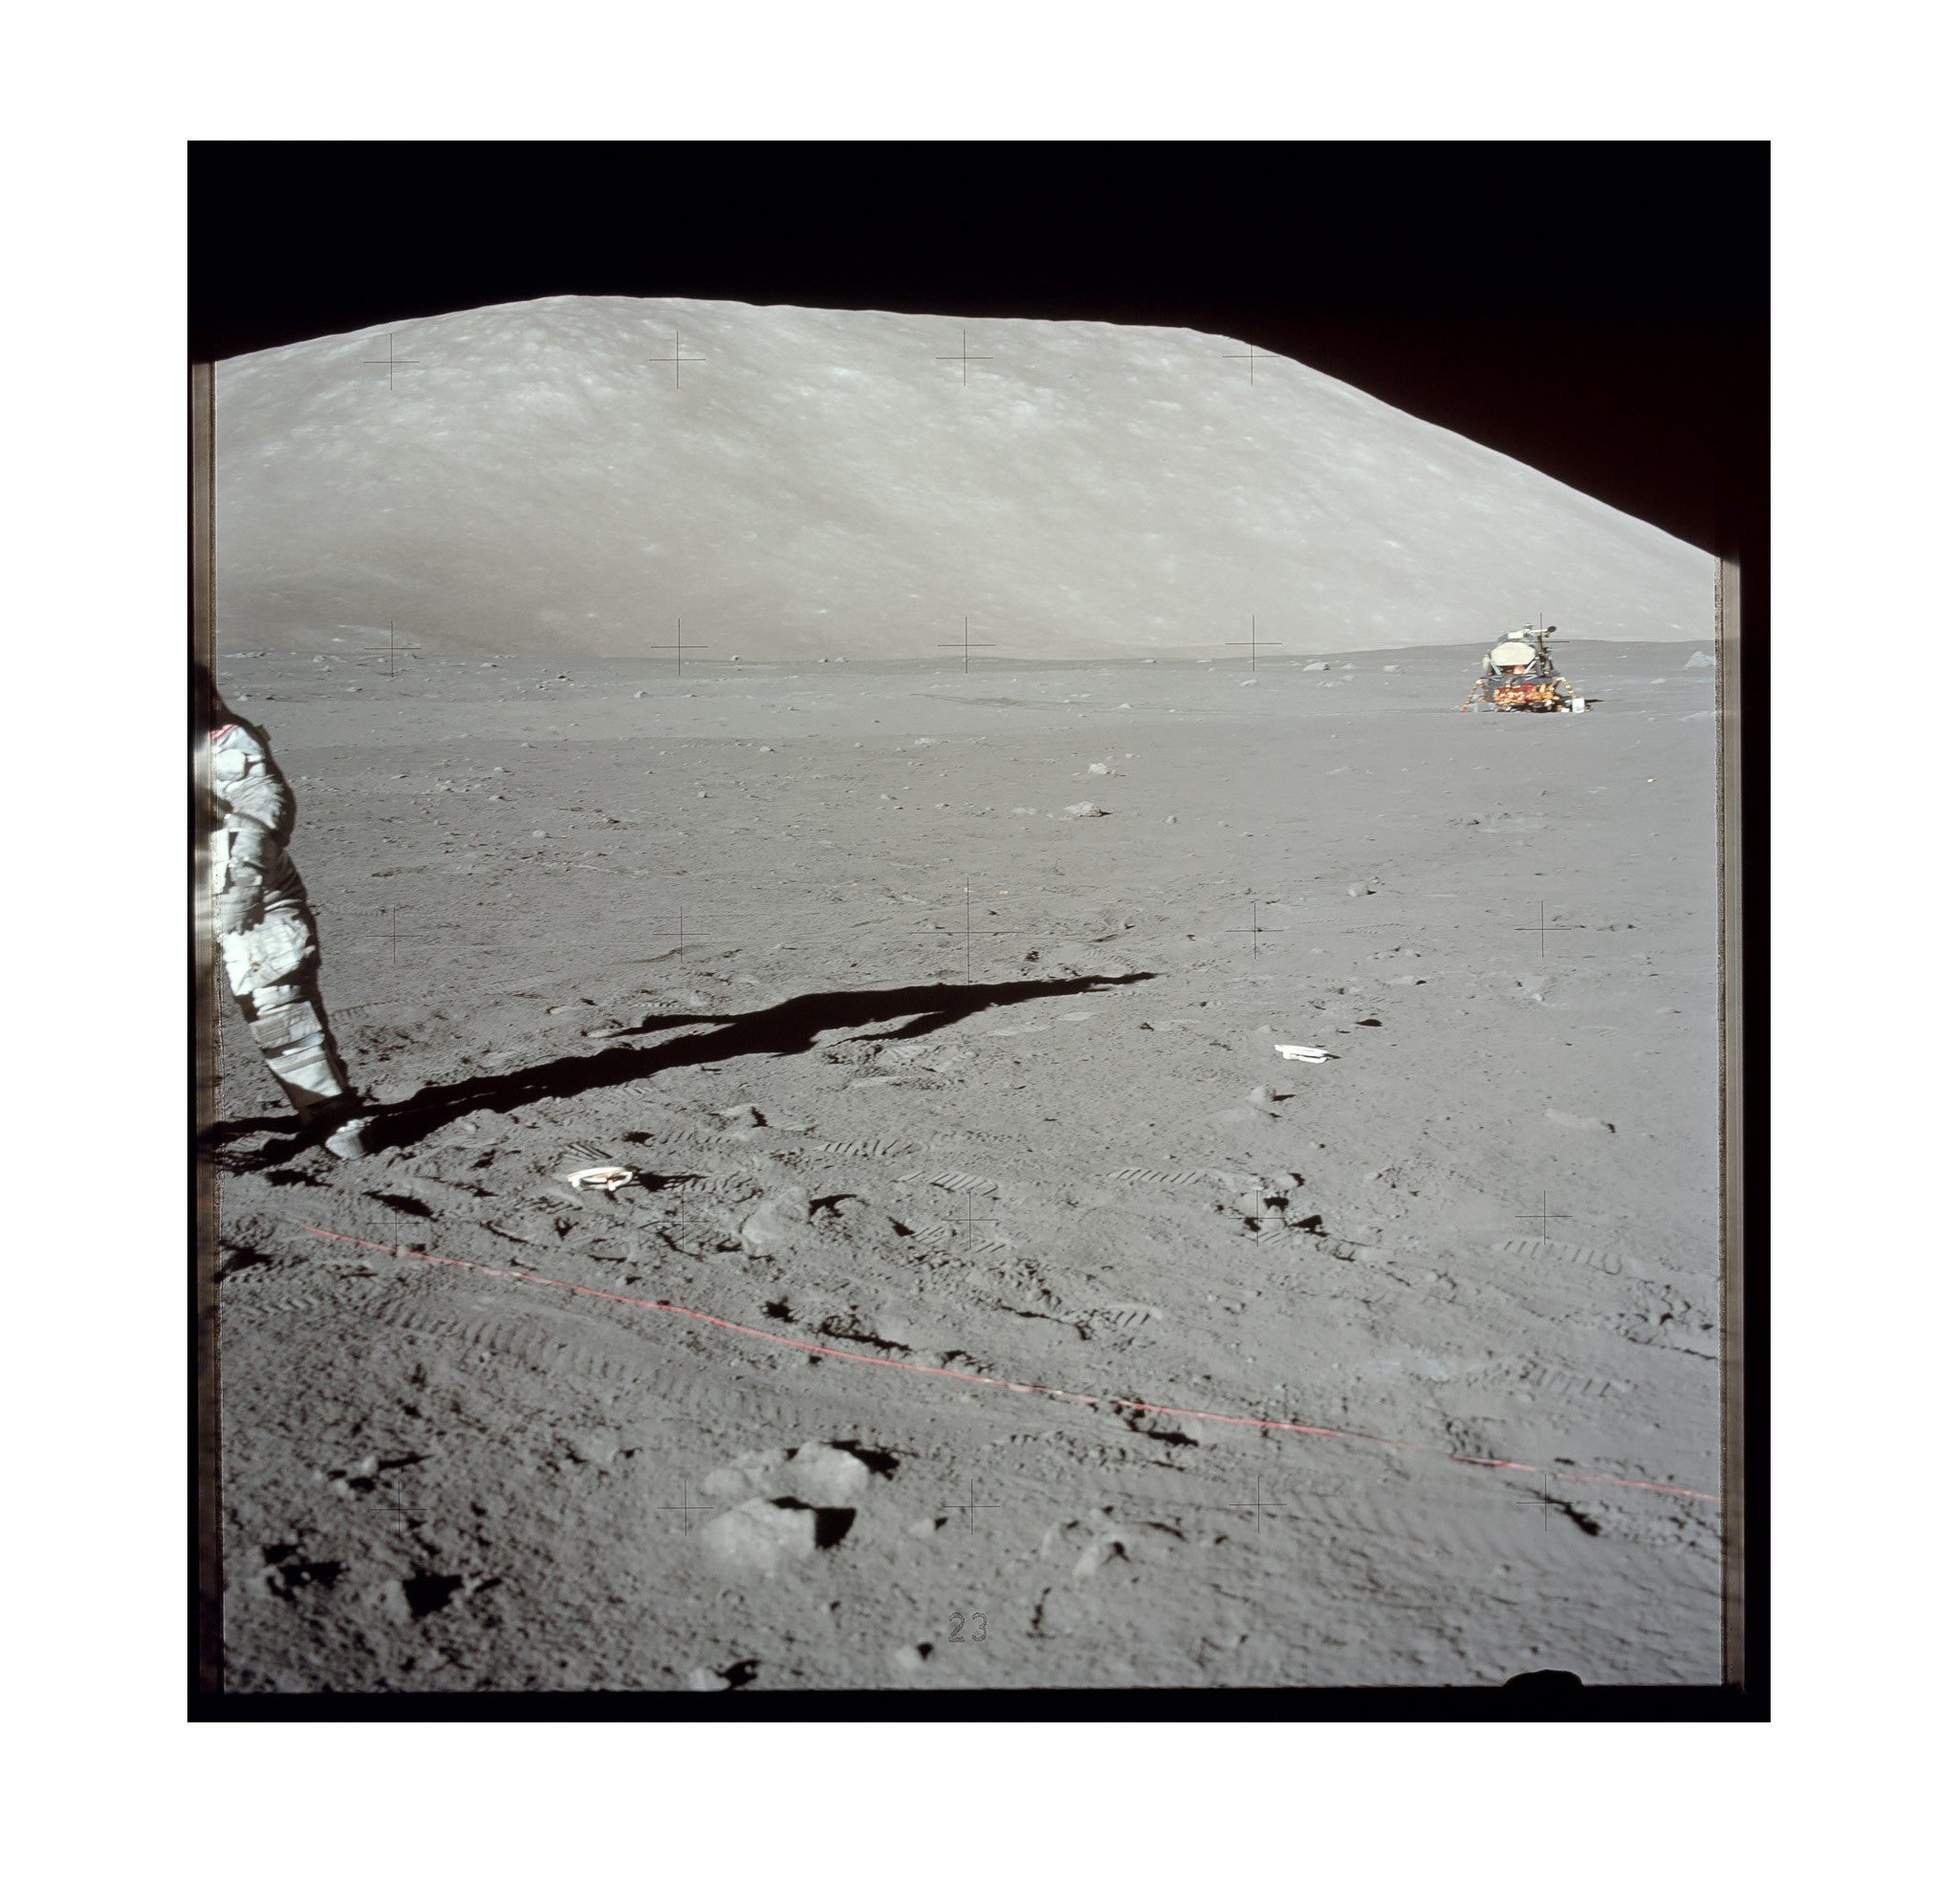 Apollo 17 – Deploying Transmitter